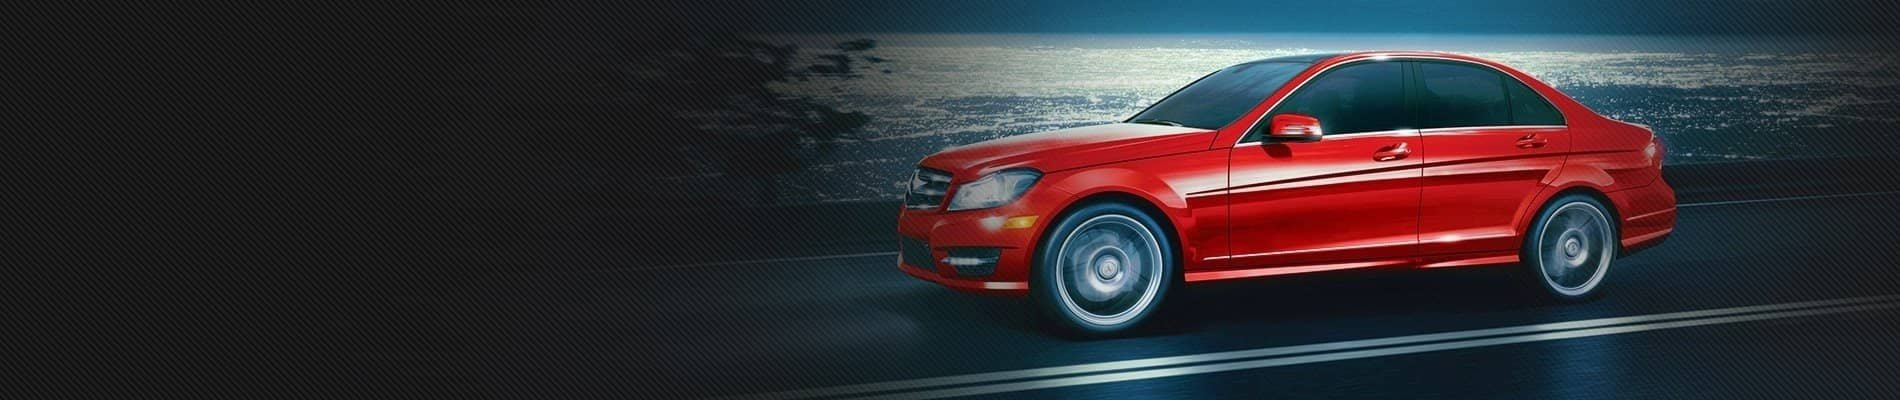 Used mercedes benz specials in calgary mercedes benz for Mercedes benz cpo special offers